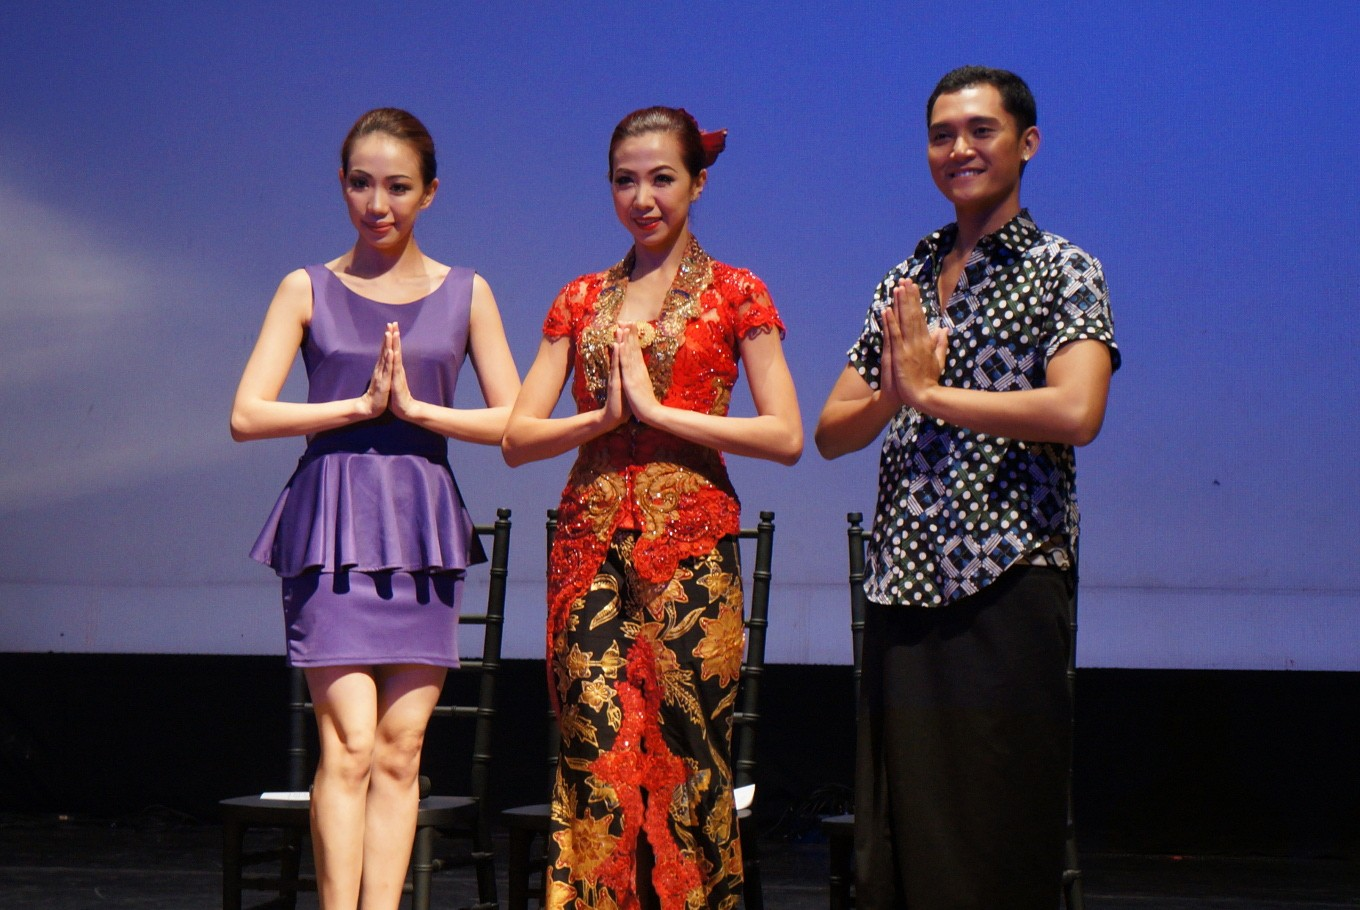 Director of Indonesian Dance Theater Claudia Warni (left), principal Sisilia Oei (center) and head of dance company Josh Marcy at a press conference in Jakarta on Jan. 21 prior to the recital. JP/ Seto Wardhana